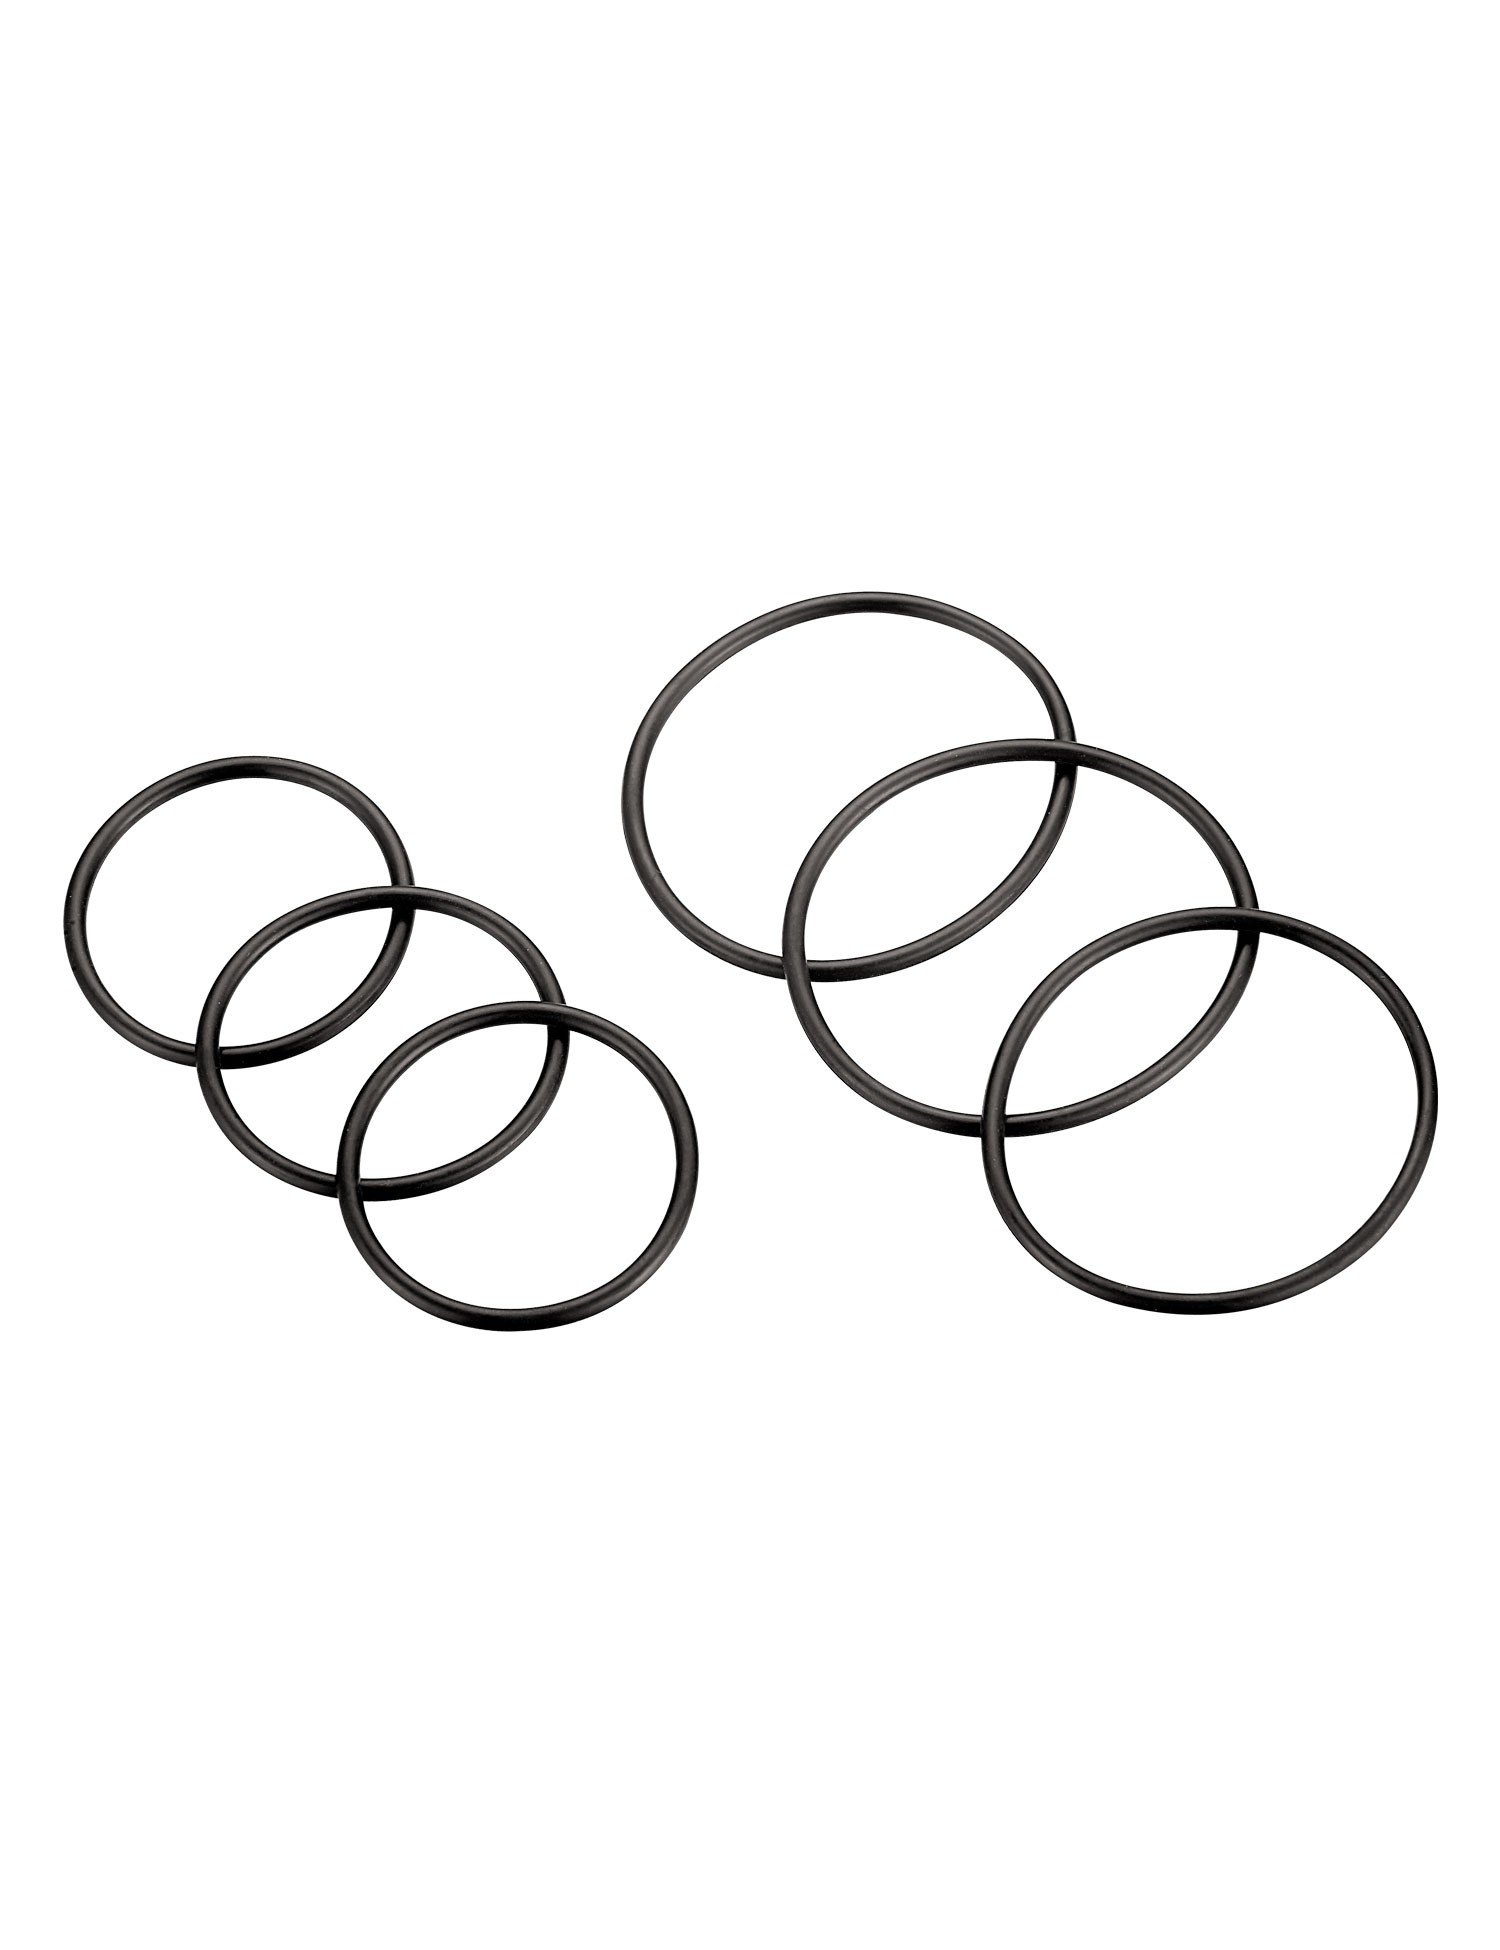 KIT - FIXATION O-RING SET